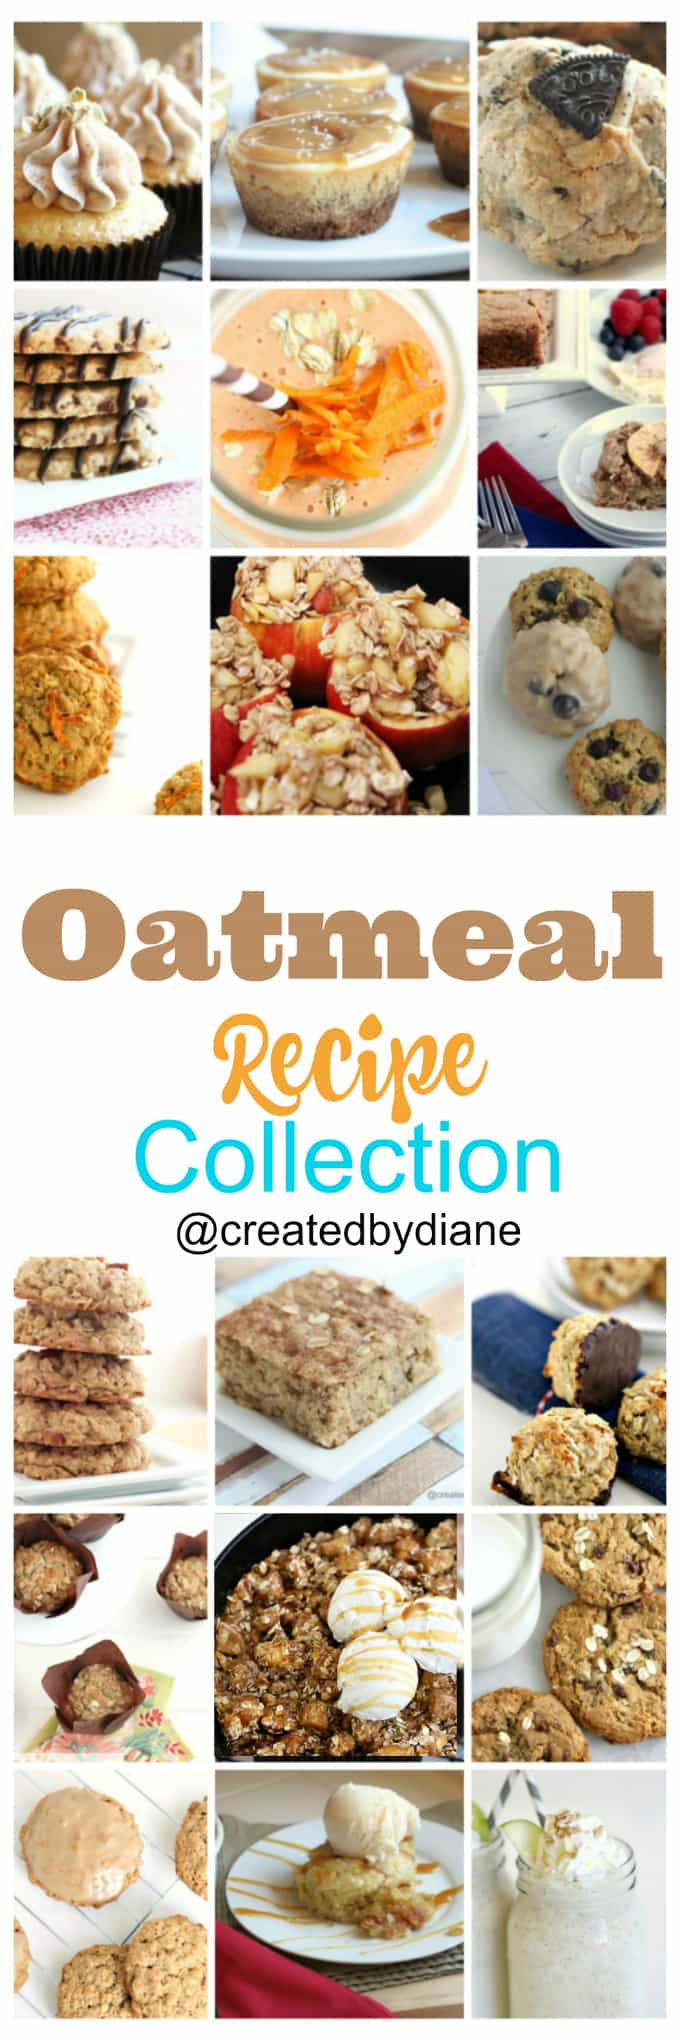 Easy oatmeal recipe collection, cookies, cakes, smoothies, apple desserts from @createdbydiane